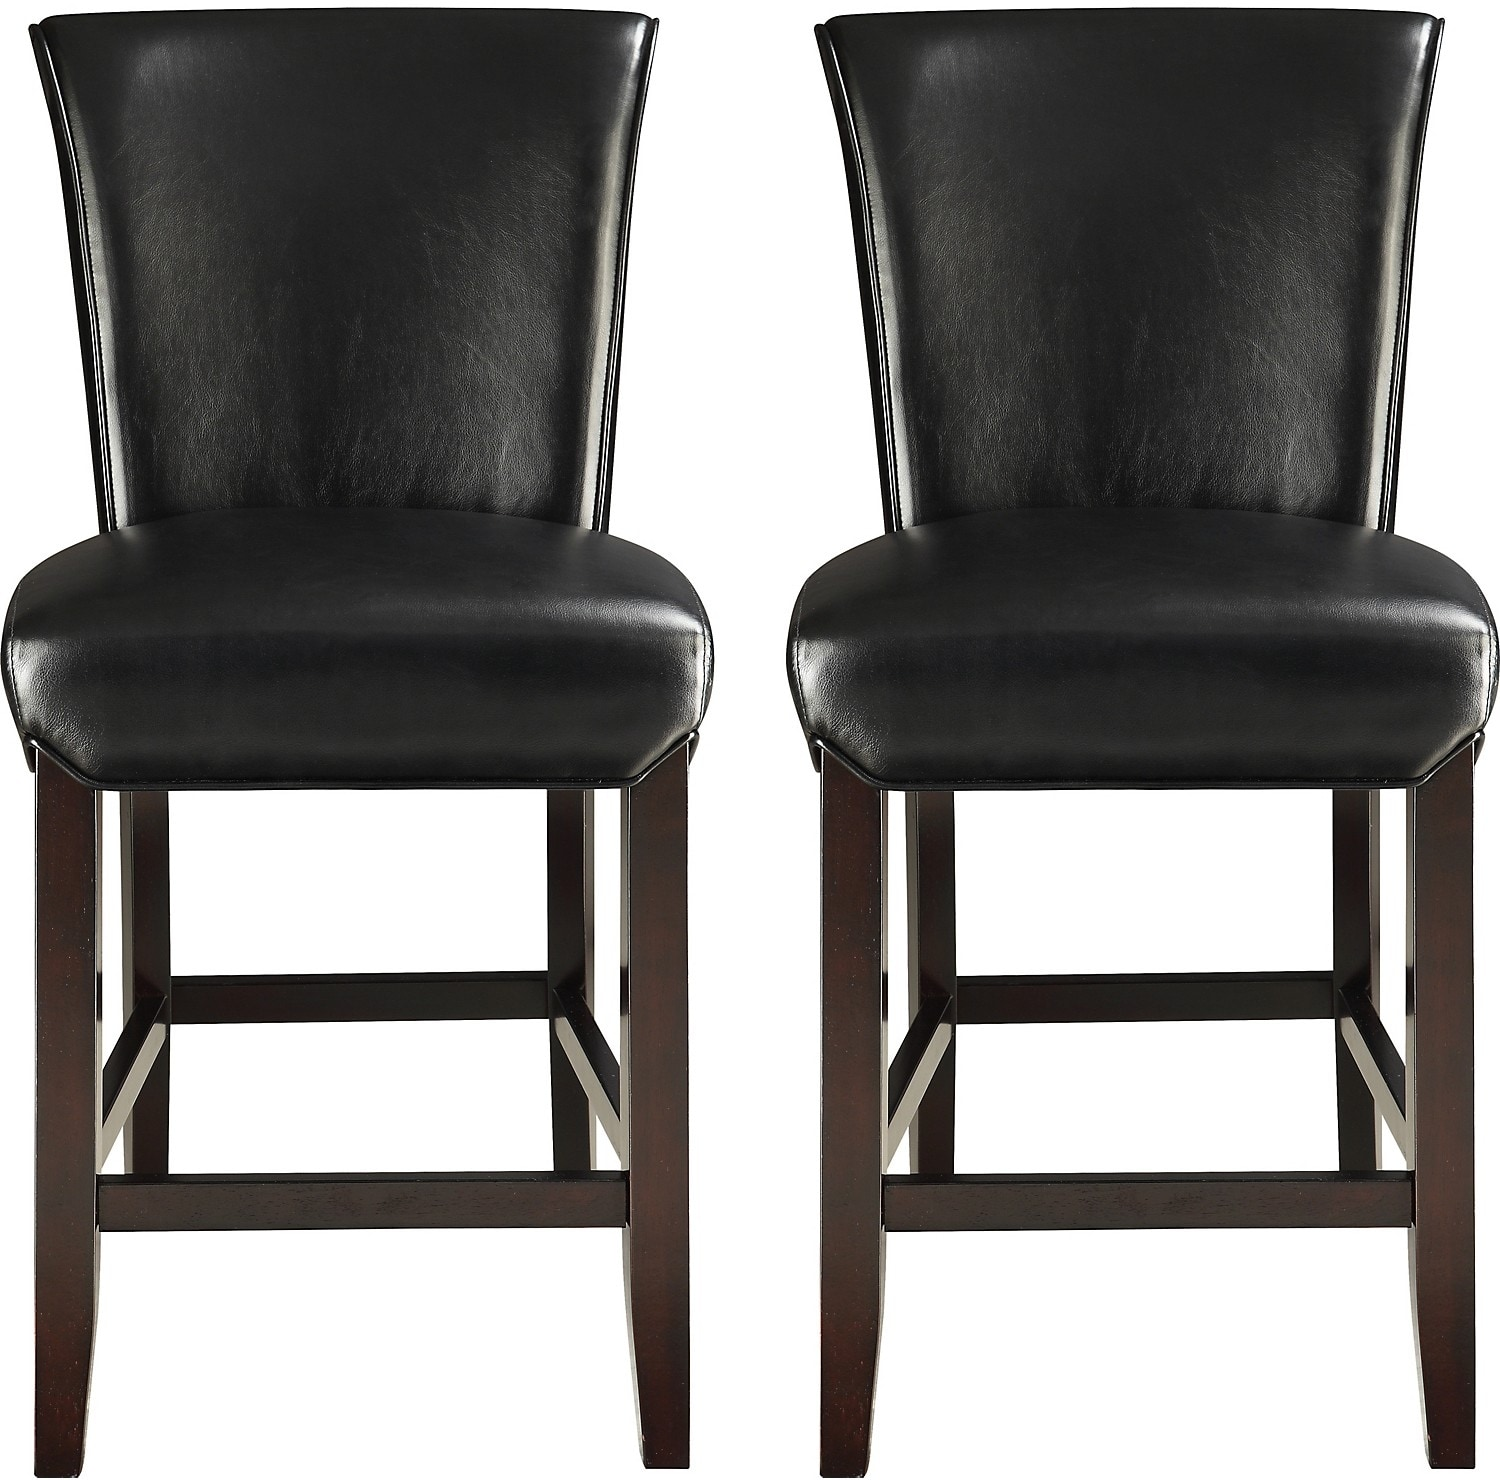 Brogan Counter-Height Dining Stool Set of 2 – Black